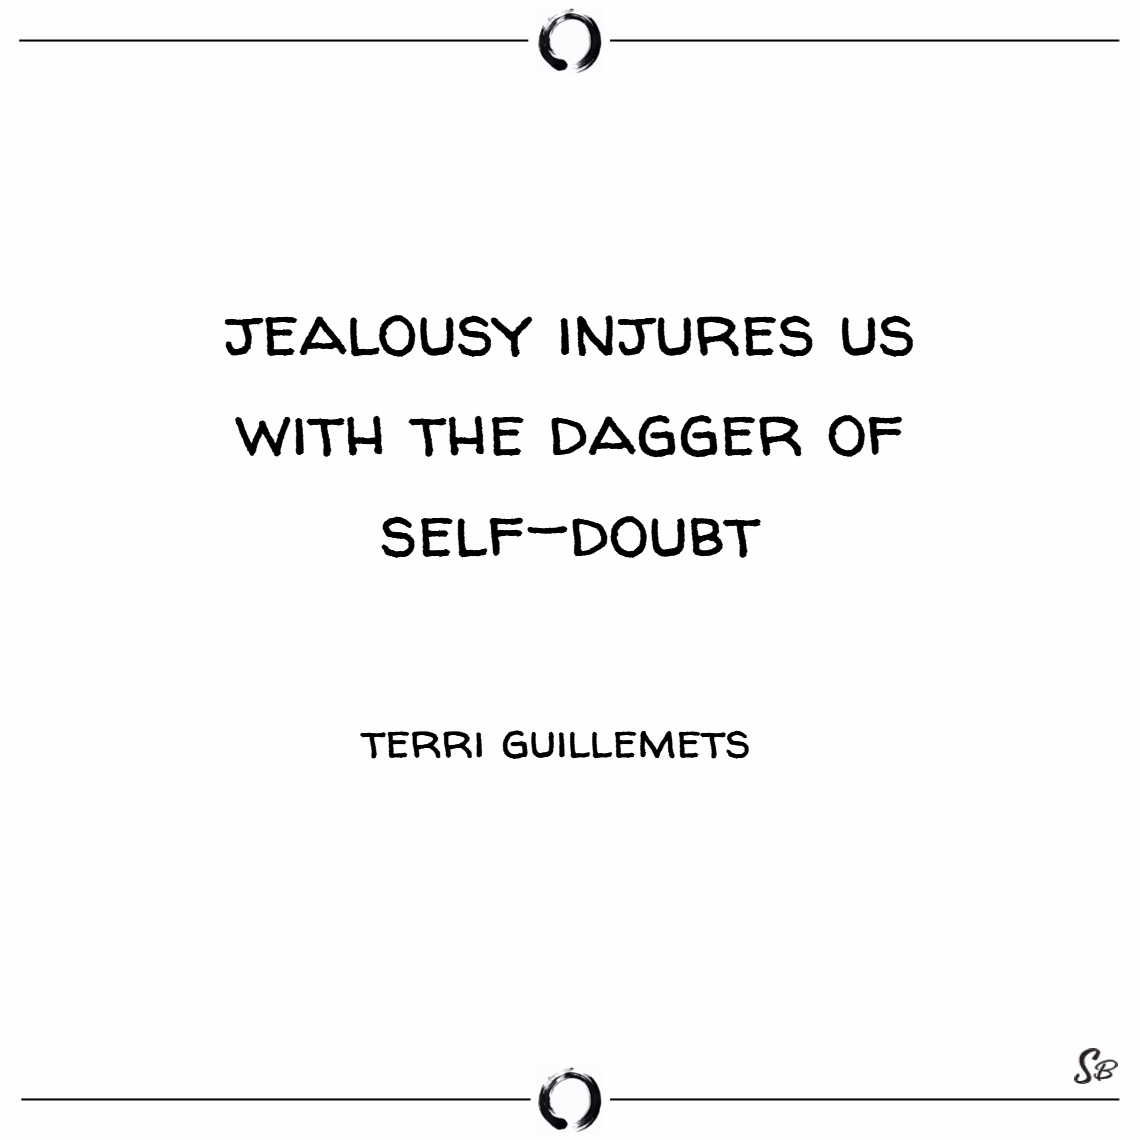 Jealousy injures us with the dagger of self doubt. – terri guillemets